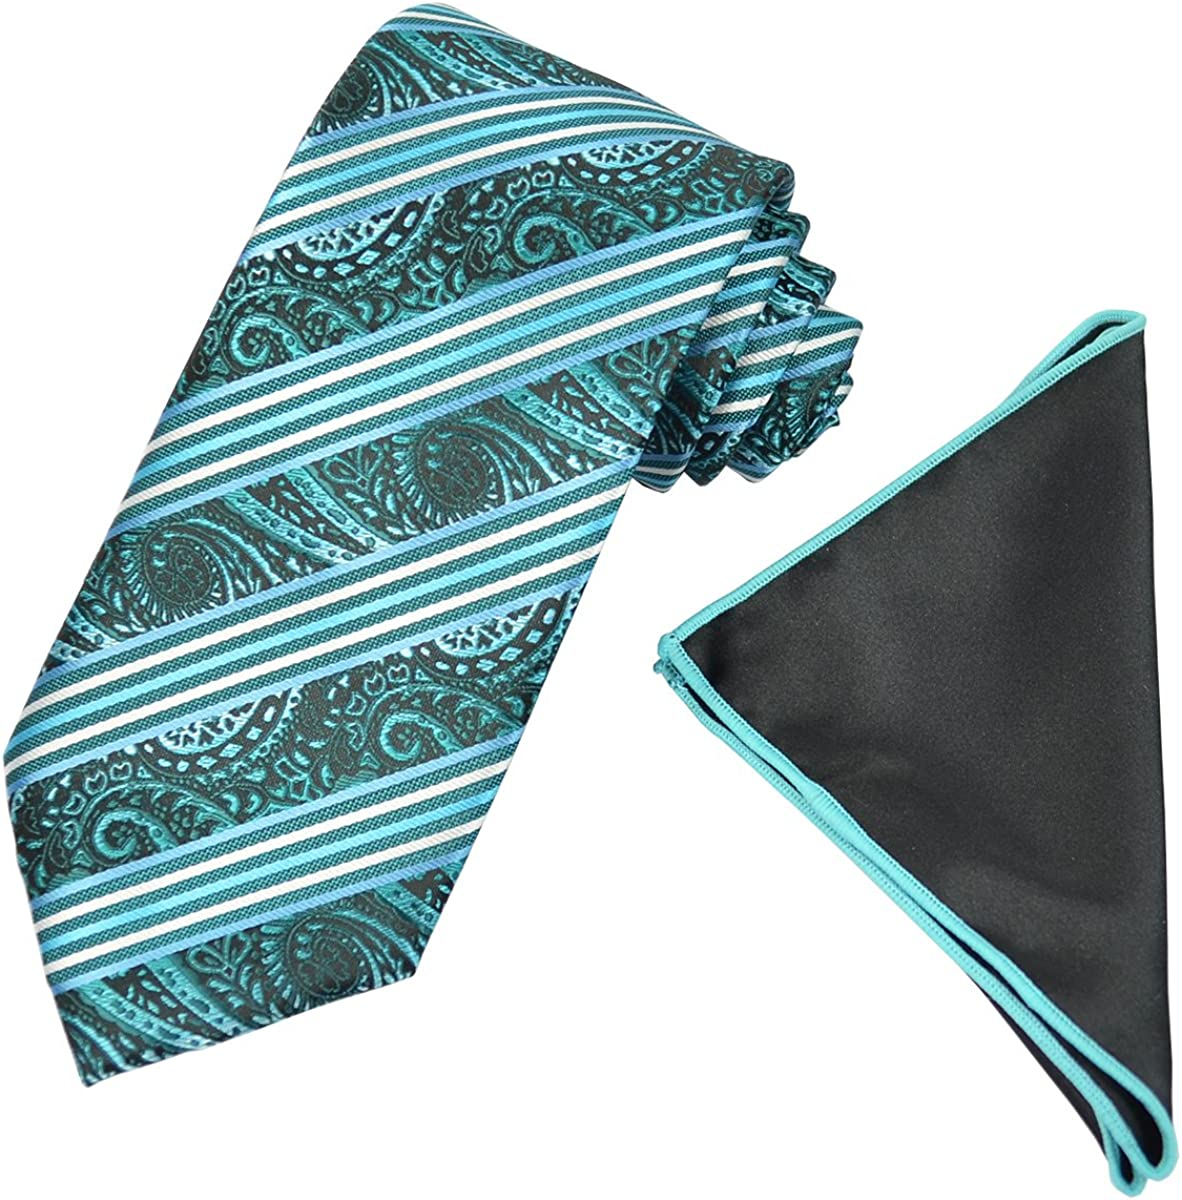 Turquoise Striped Men's Tie and Pocket Square Set